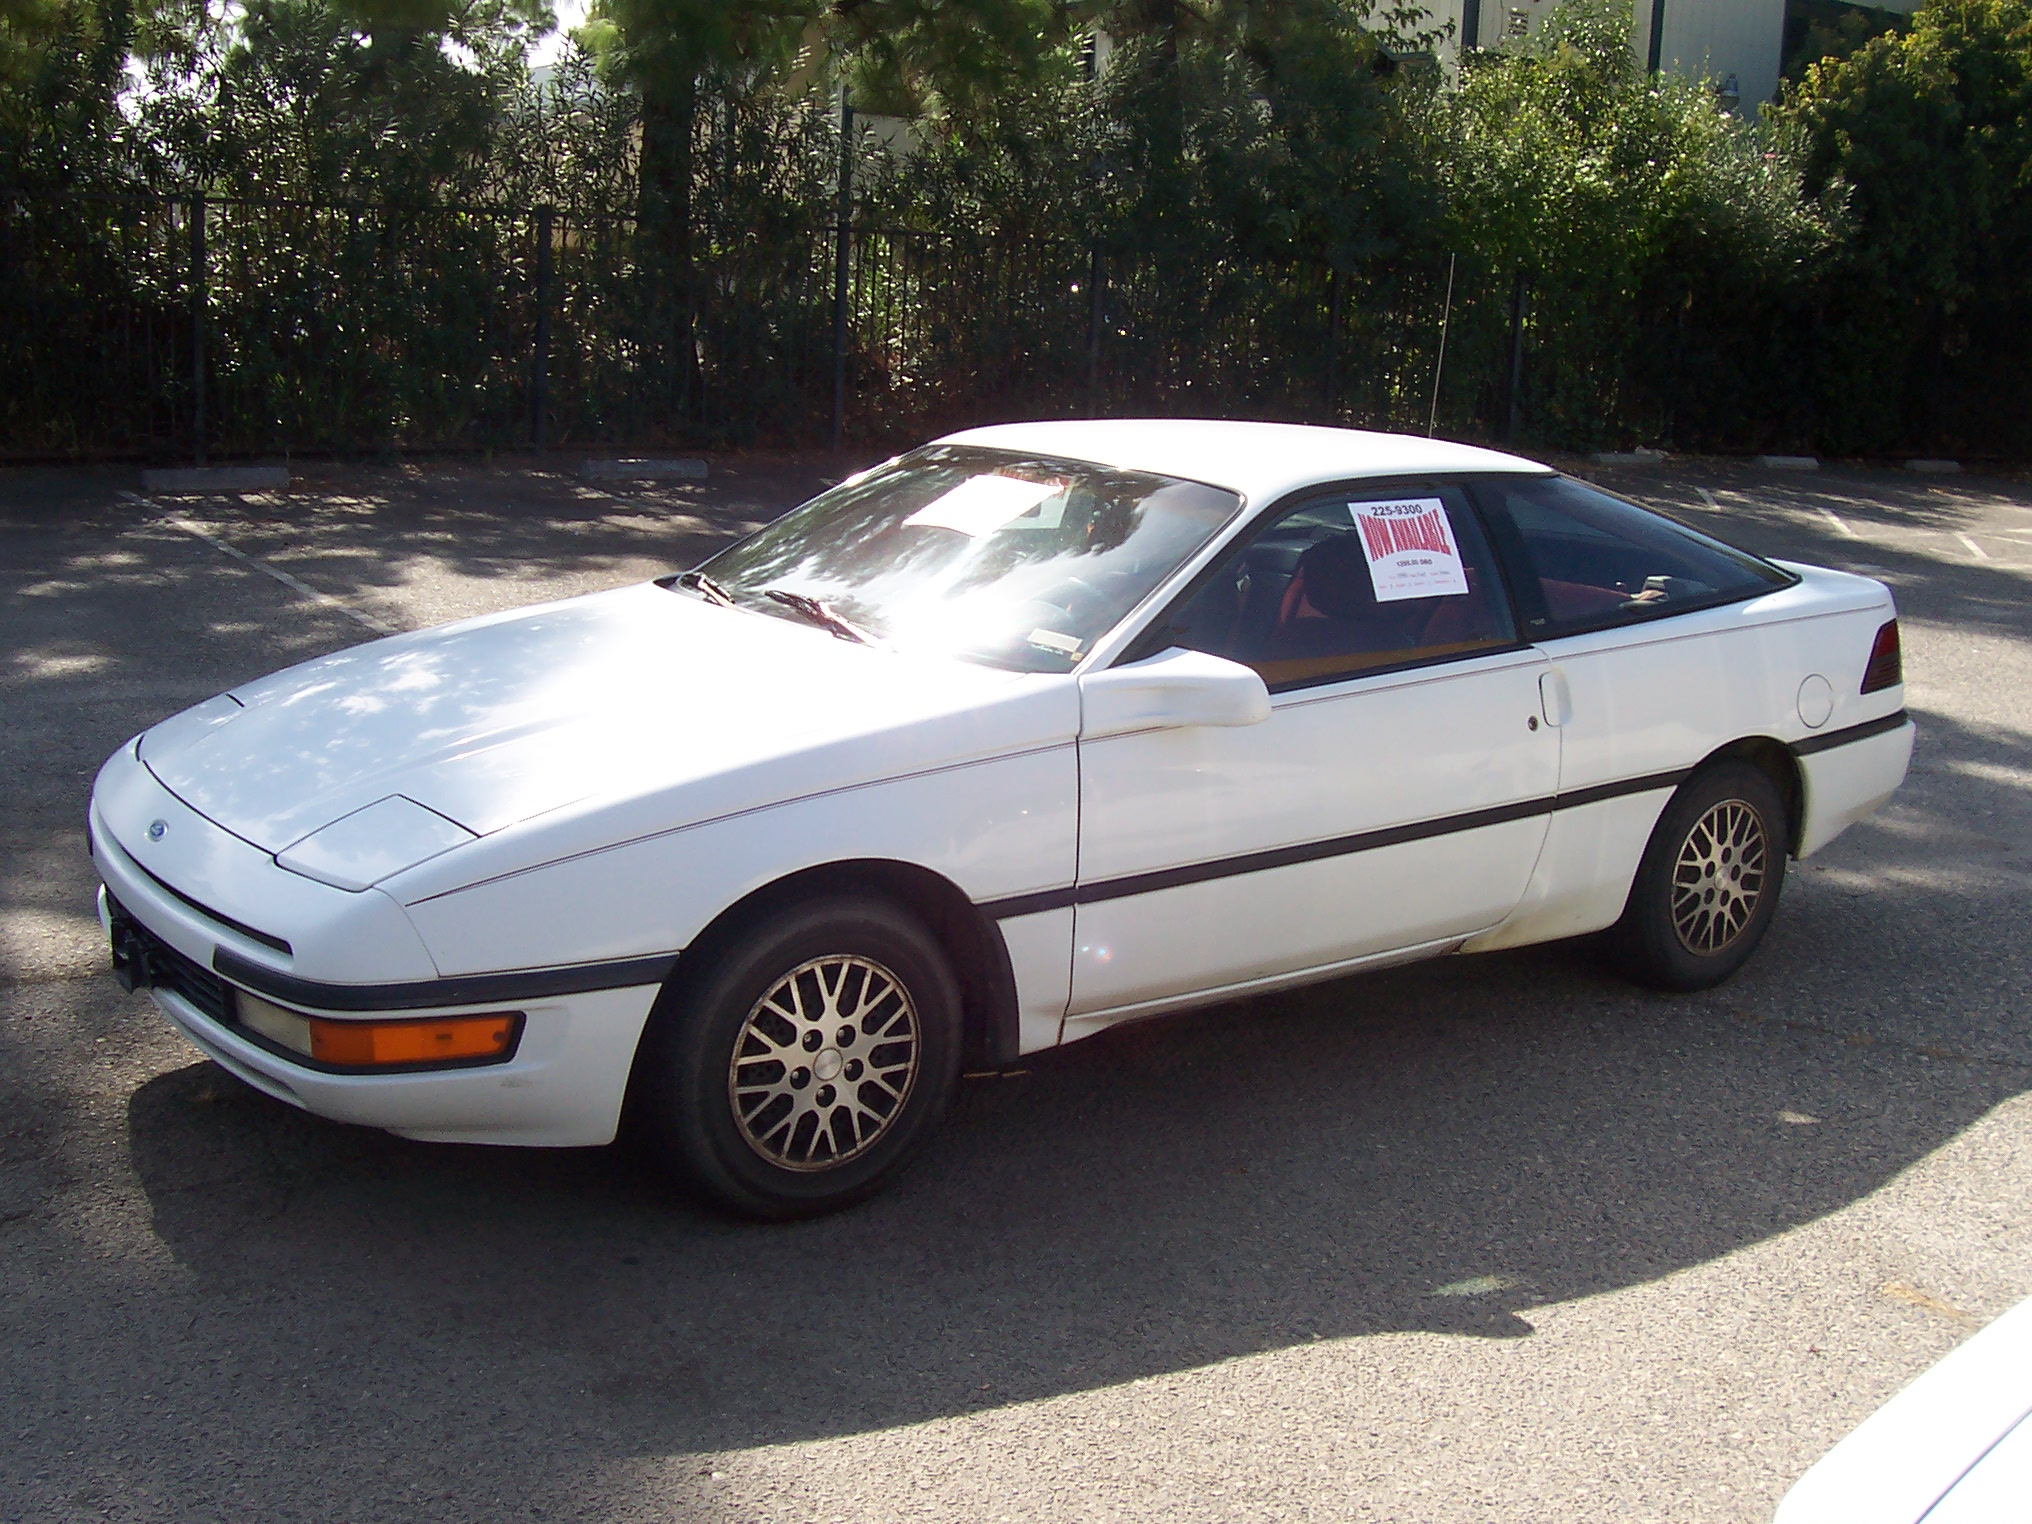 Ford Probe photo 15